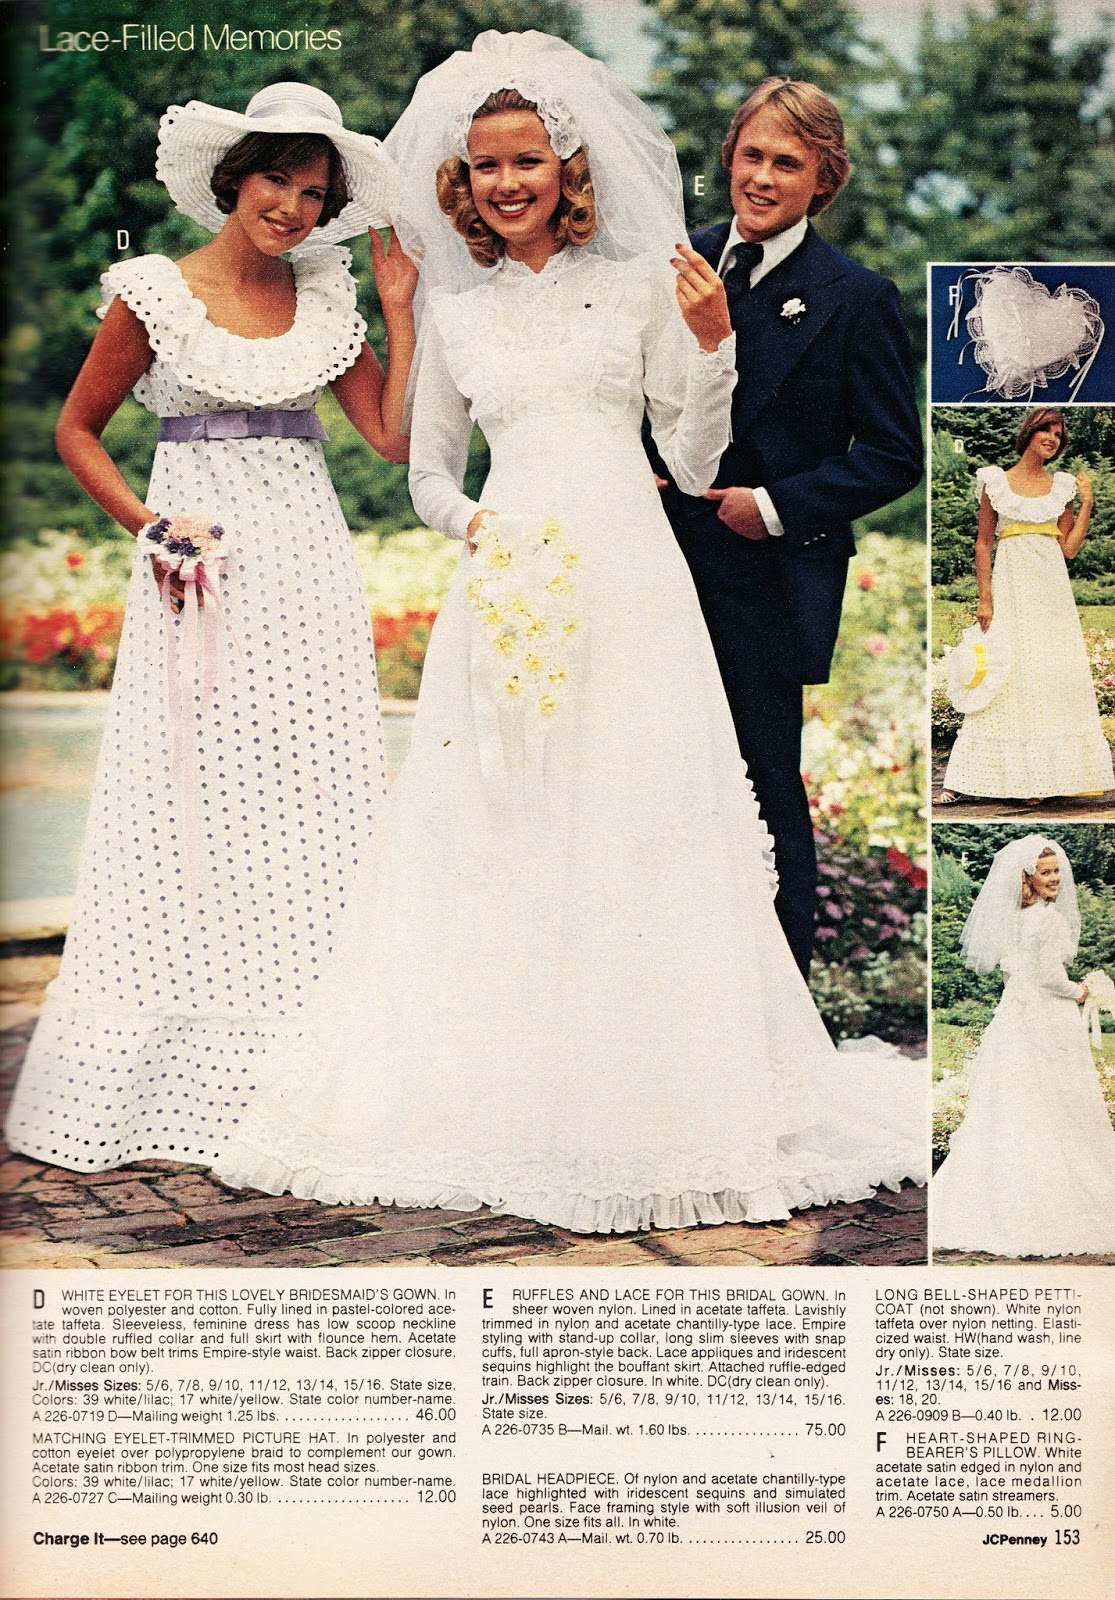 crazy catalog stuff part 4 say yes to sears wedding dresses Okay okay this dress costs 75 instead of 50 For my precious pumpkin I ll splurge for the extra 25 00 after all it s JCP instead of Sears so you d